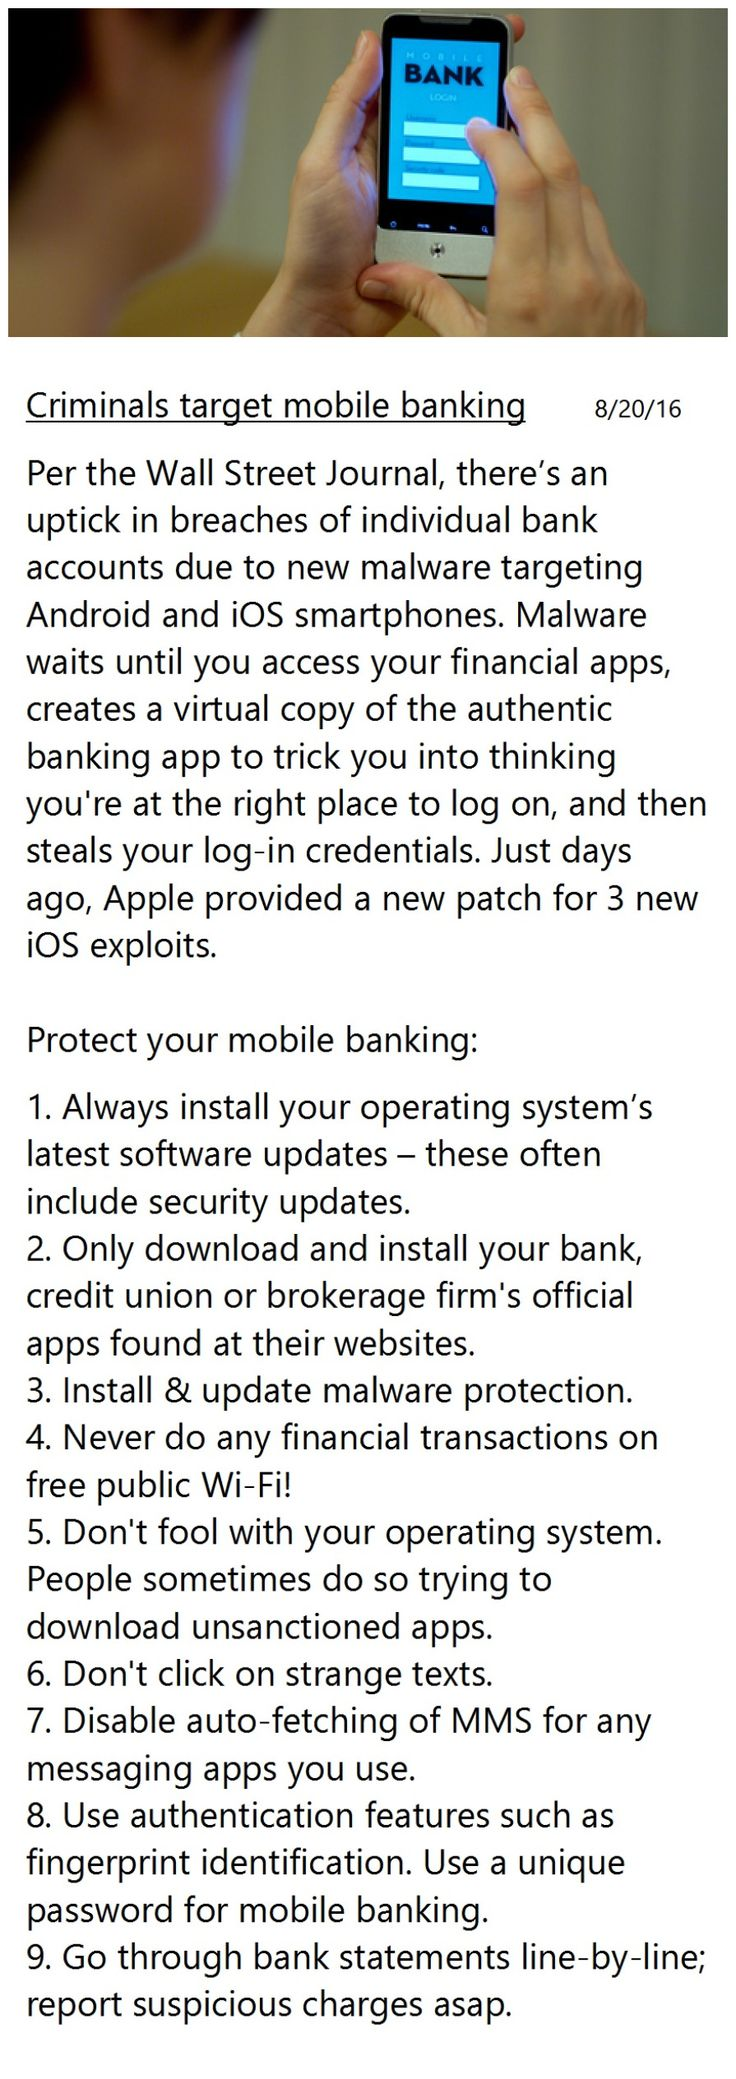 Mobile banking risks on the rise 9 ways to protect your money in our